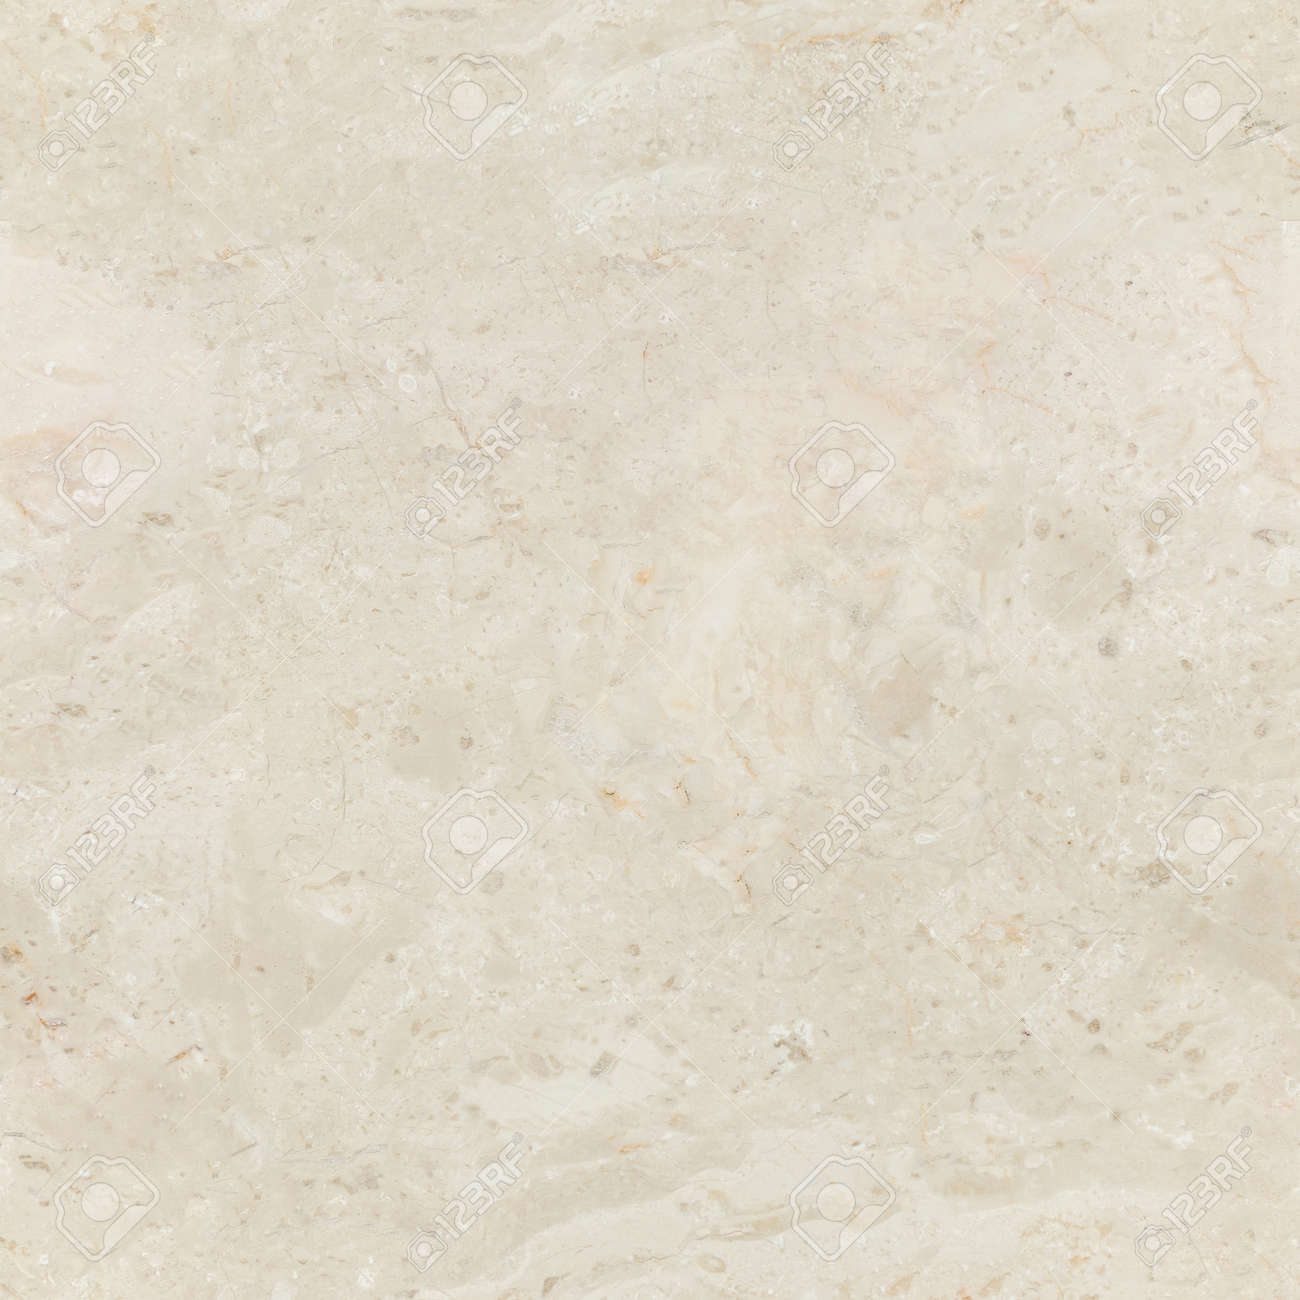 Seamless beige marble background with natural pattern. Tiled cream marble stone wall texture. Stock Photo - 48245835